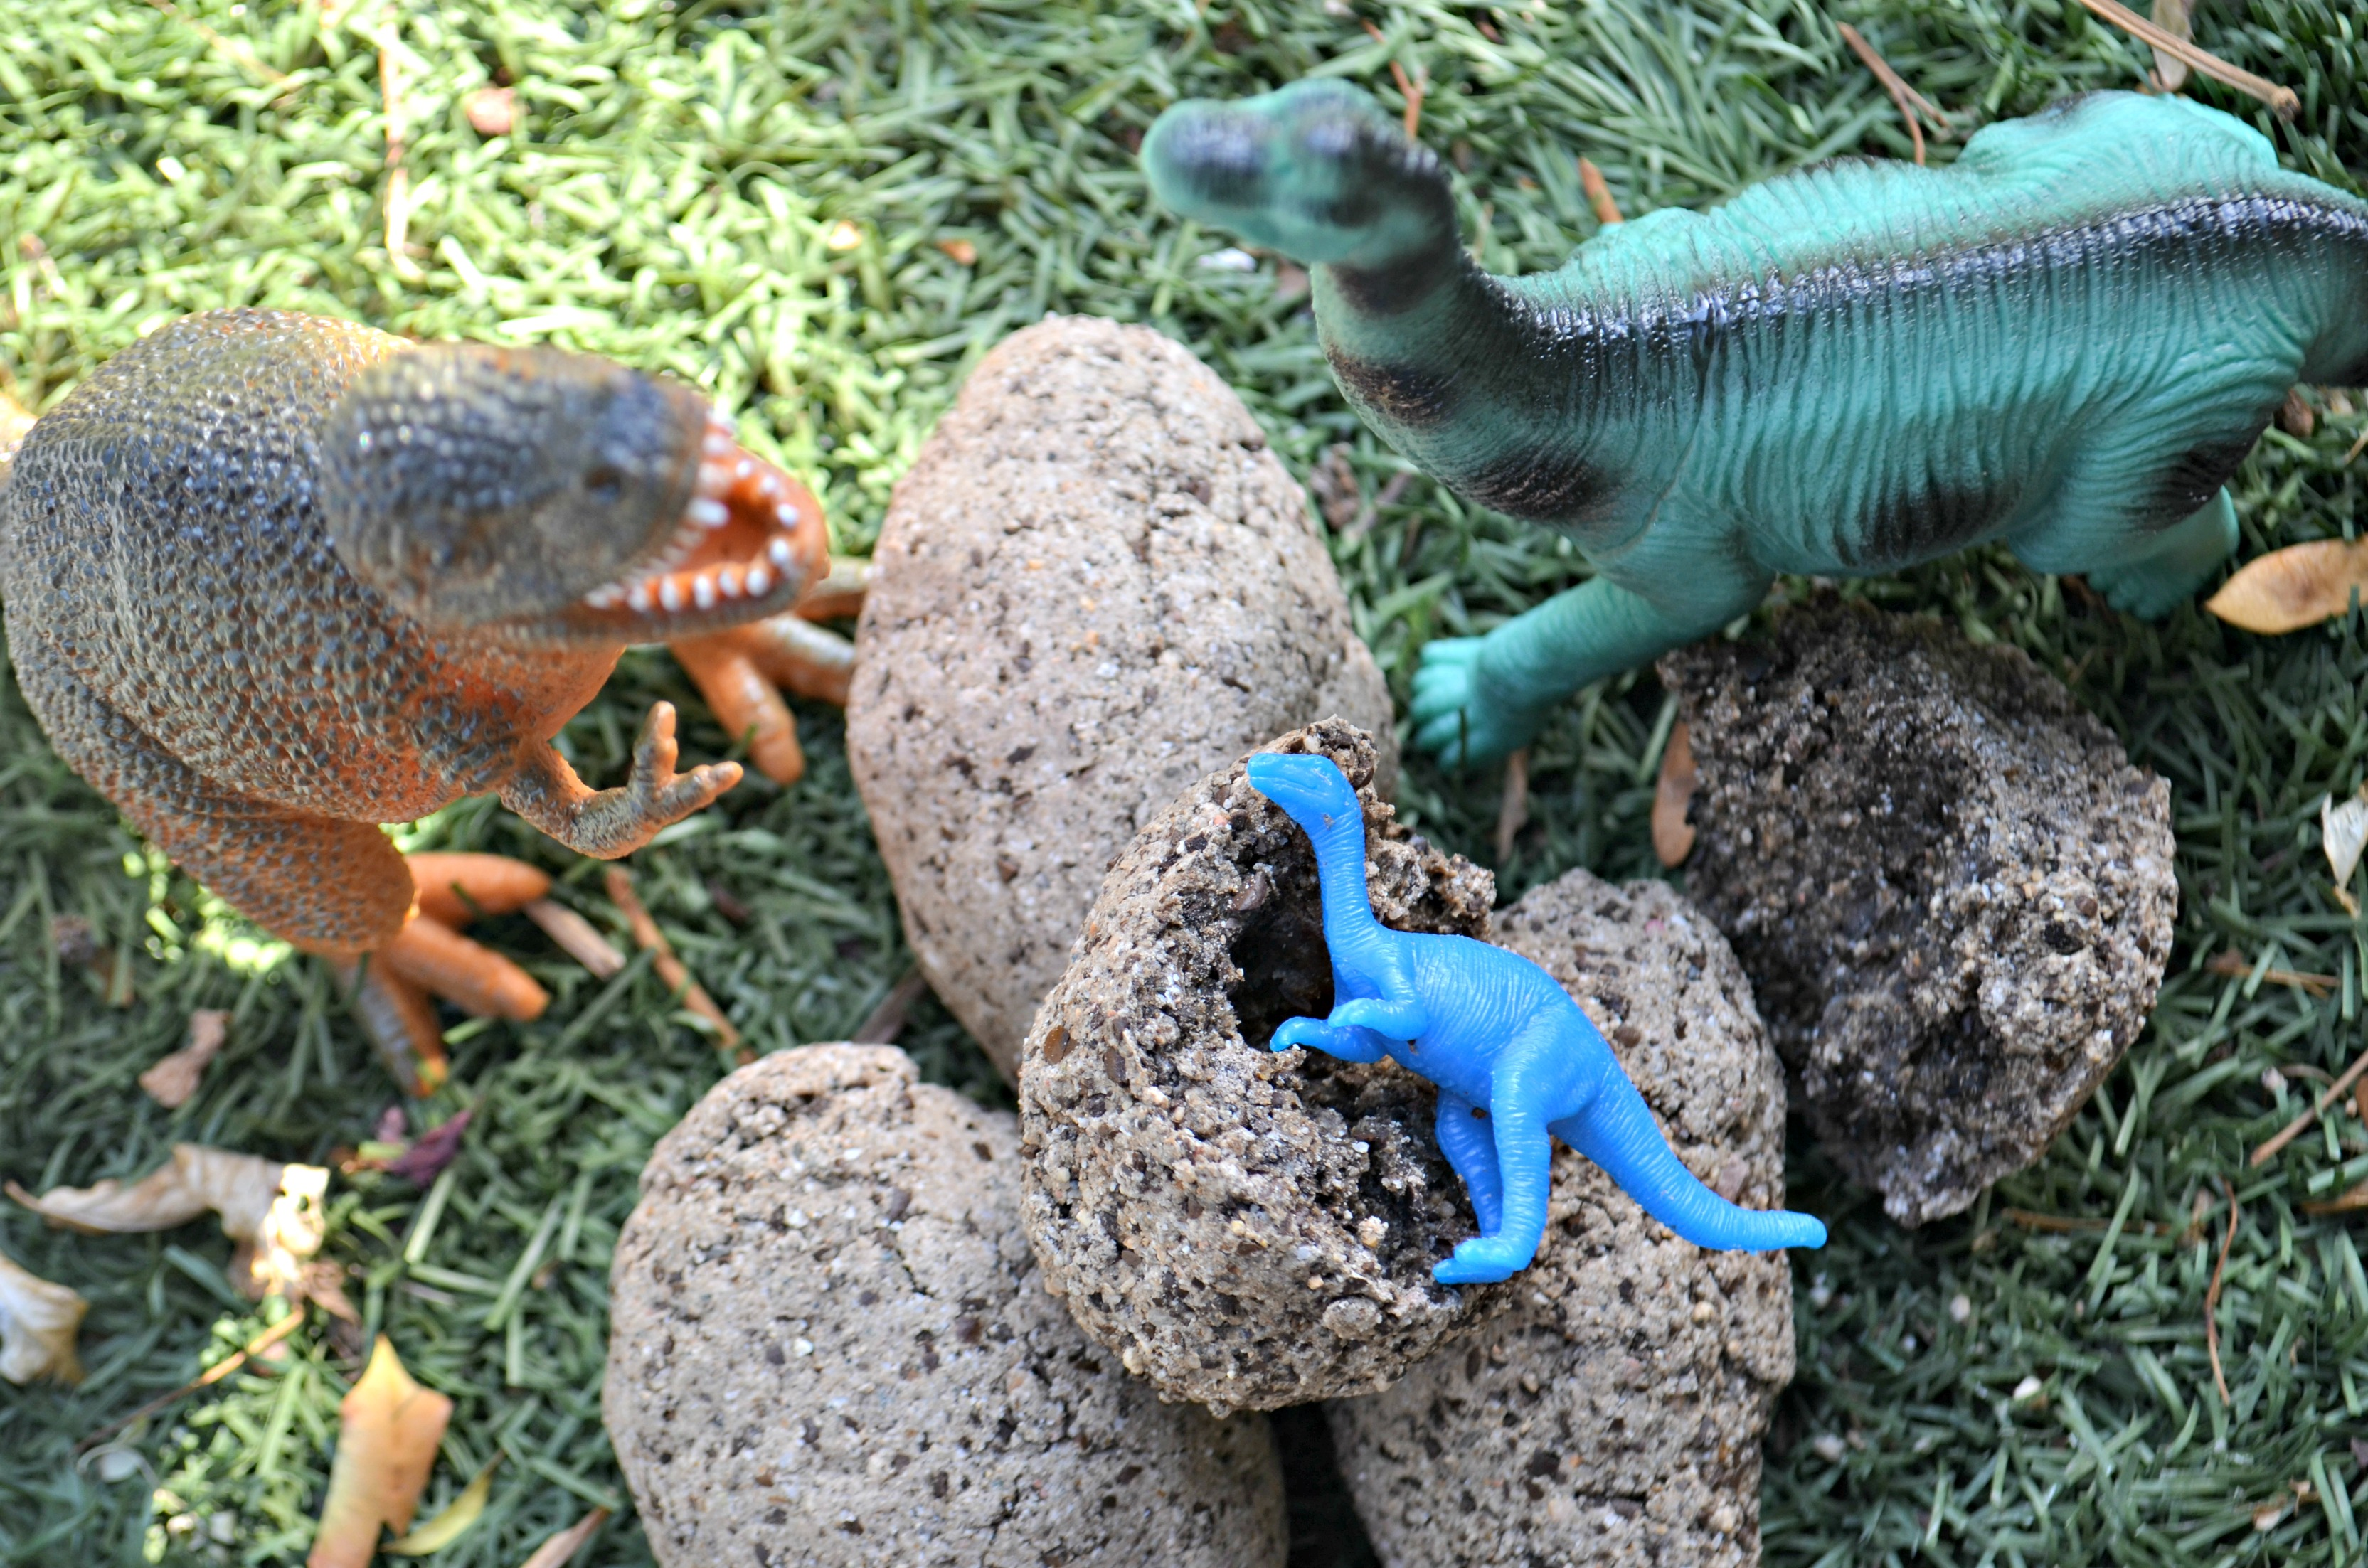 diy dinosaur surprise eggs – Dinosaurs and eggs in the grass